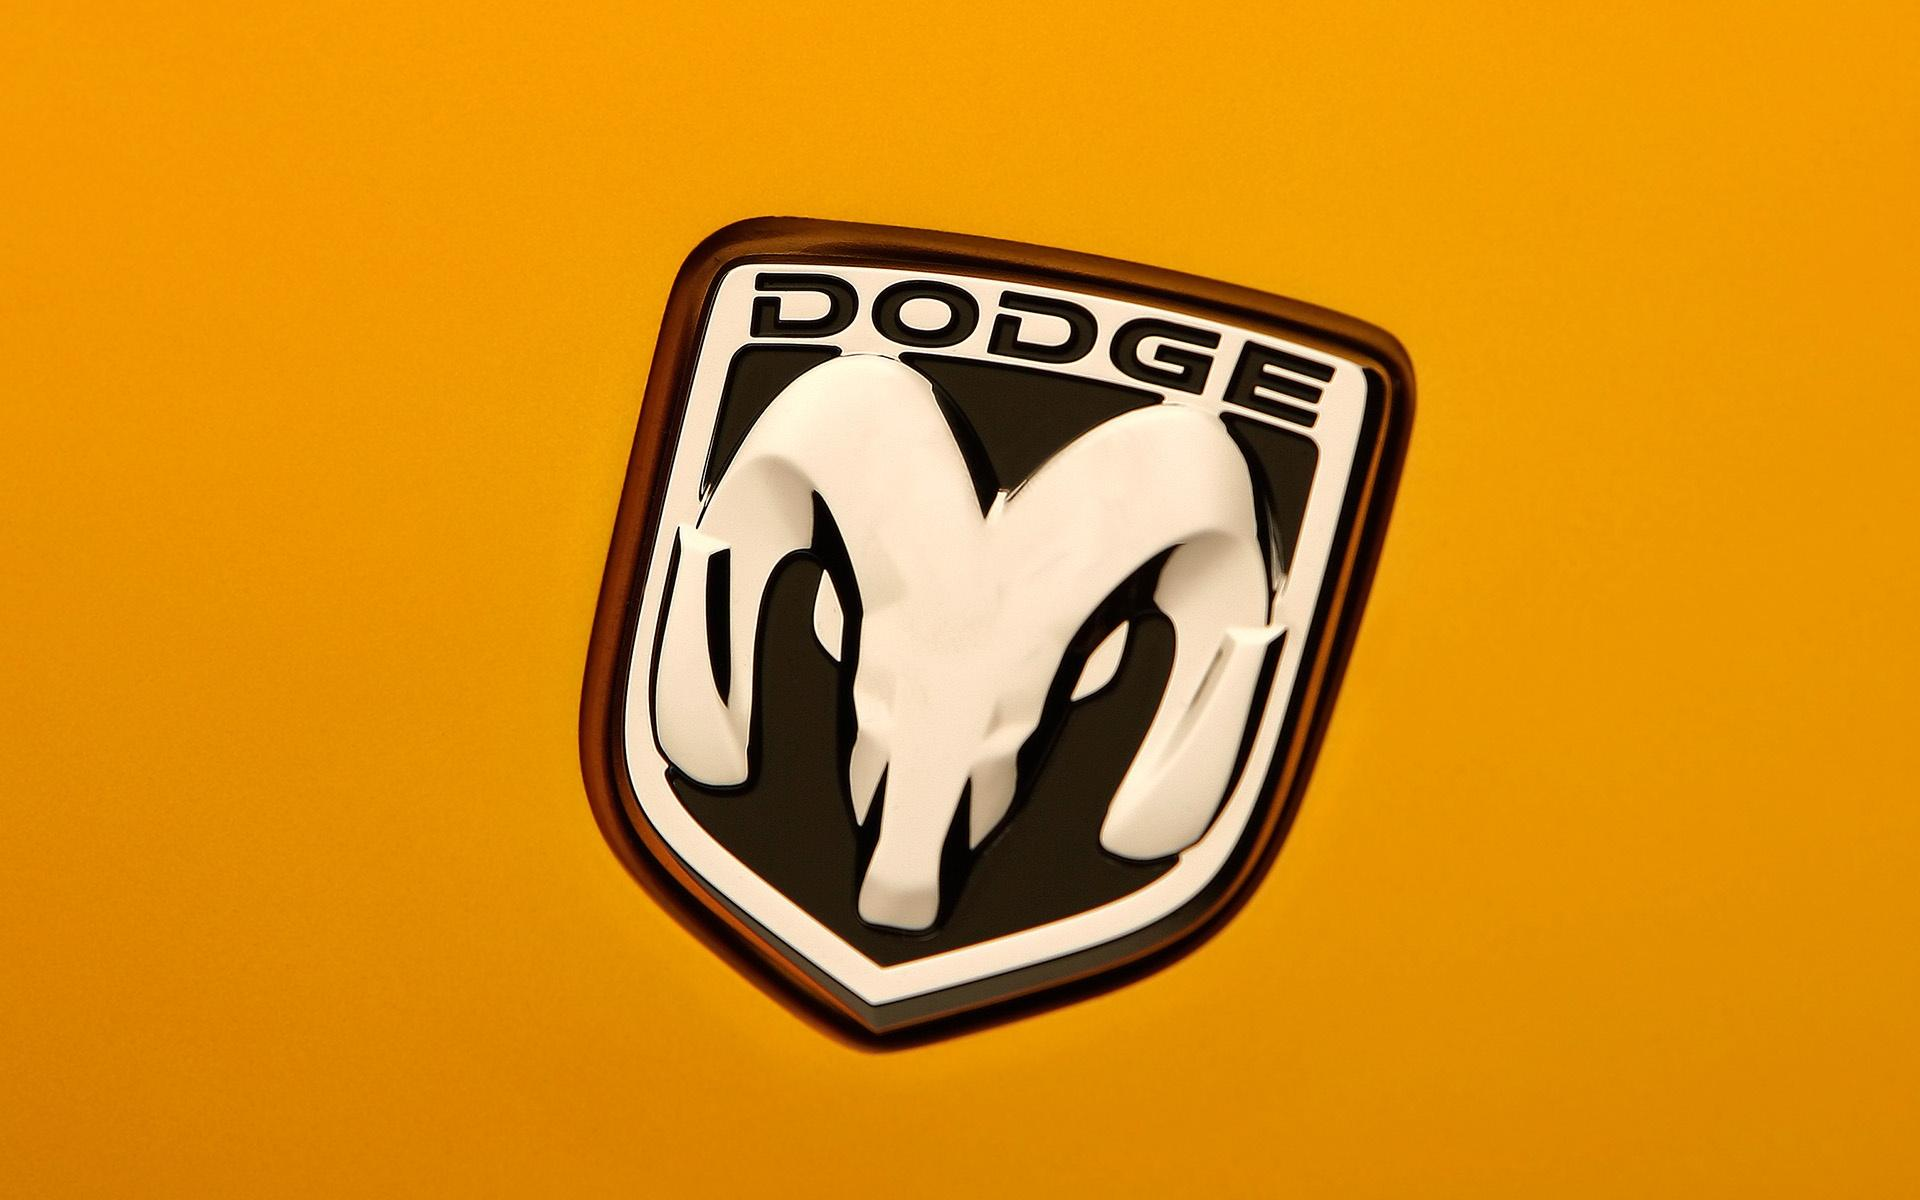 2007 Dodge Demon Roadster Concept Emblem 1920x1200